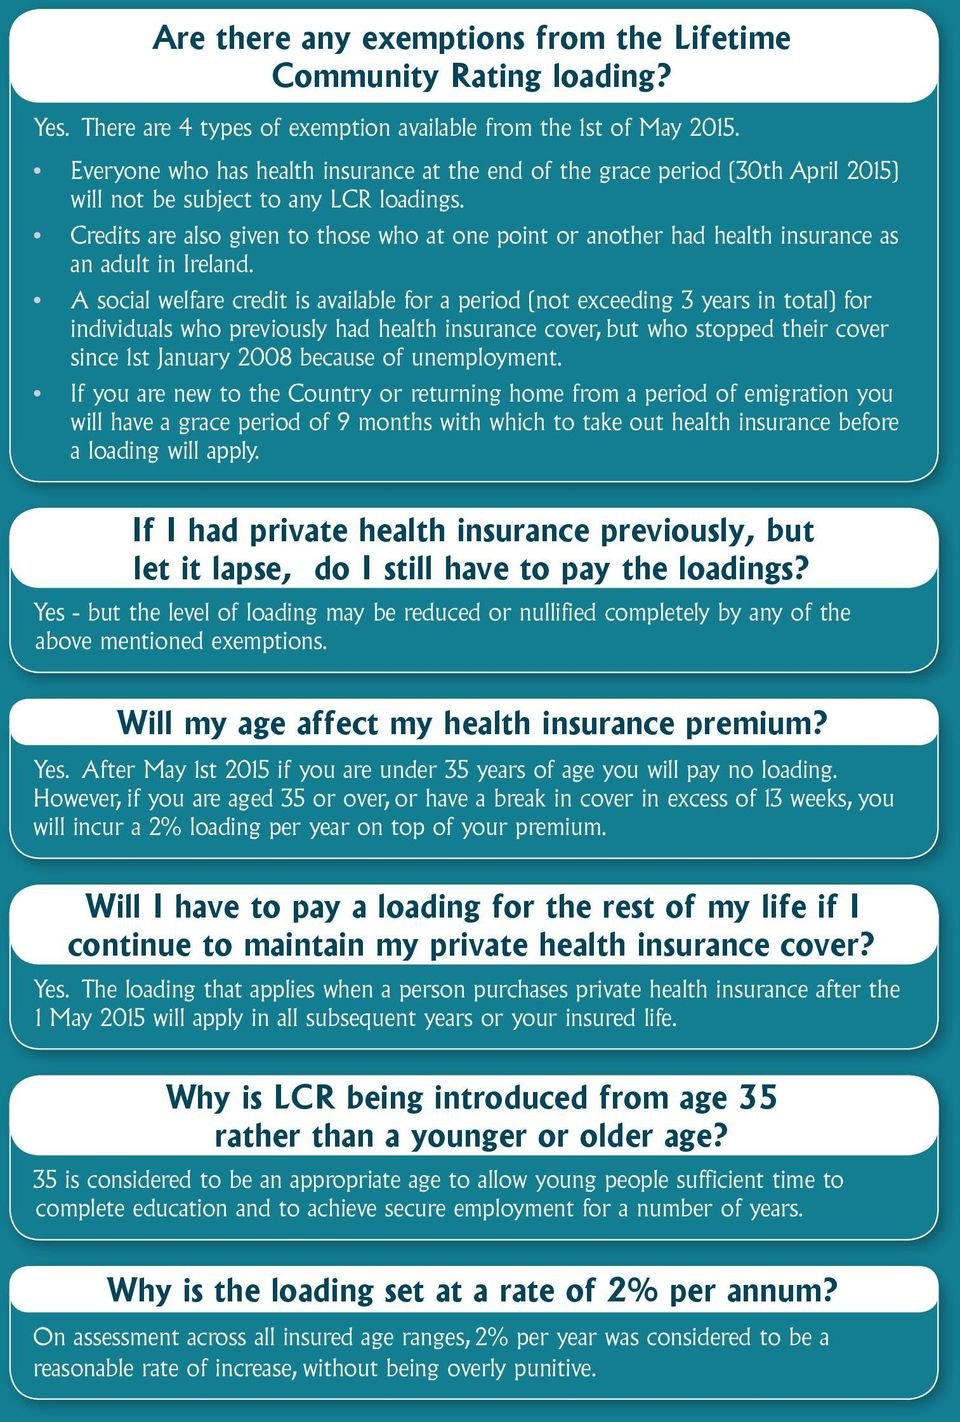 Credits are also given to those who at one point or another had health insurance as an adult in Ireland.